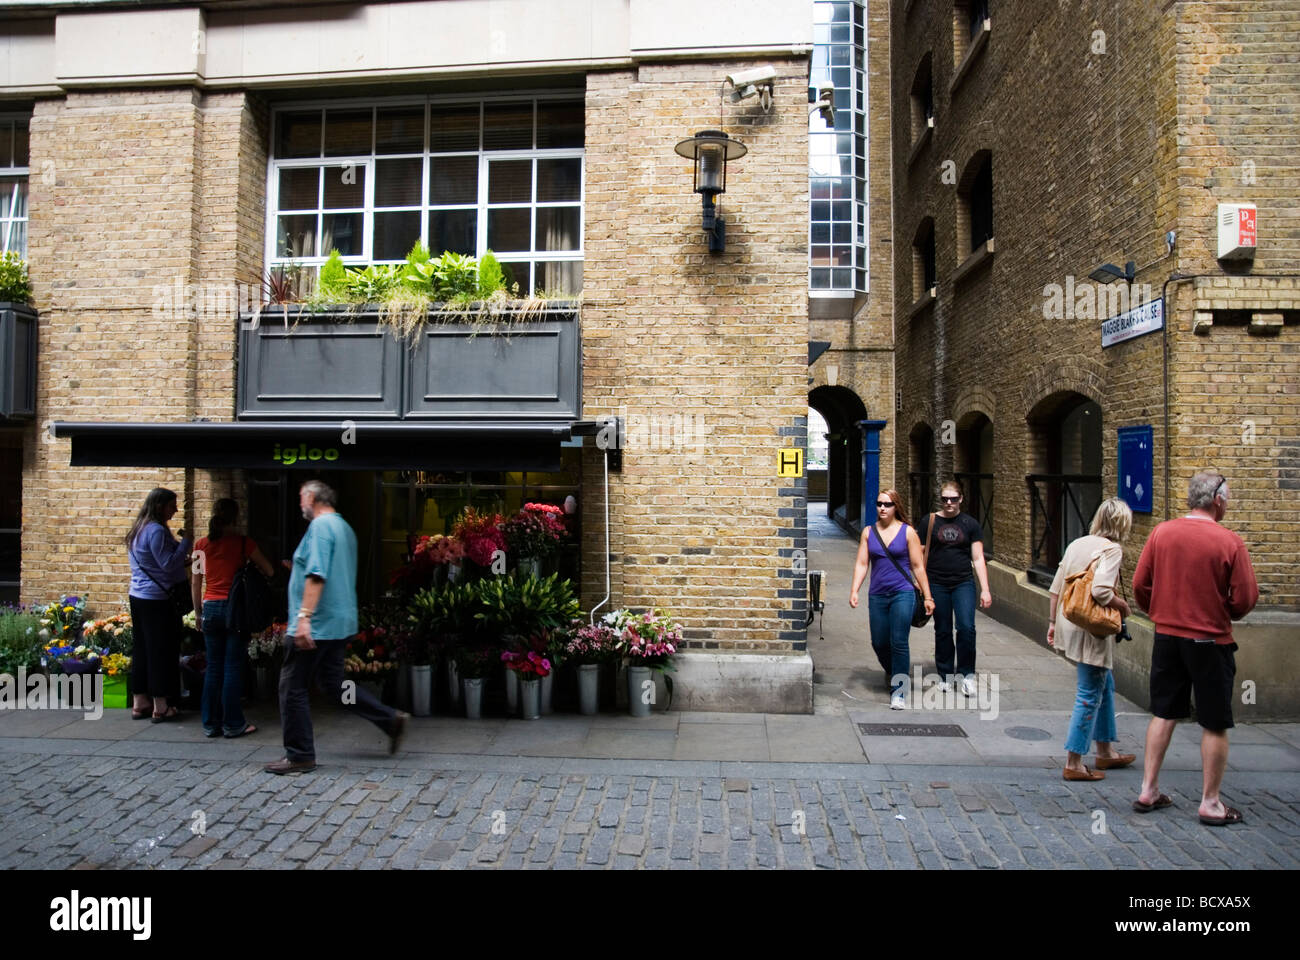 Butlers Wharf Shad Thames in London England UK - Stock Image